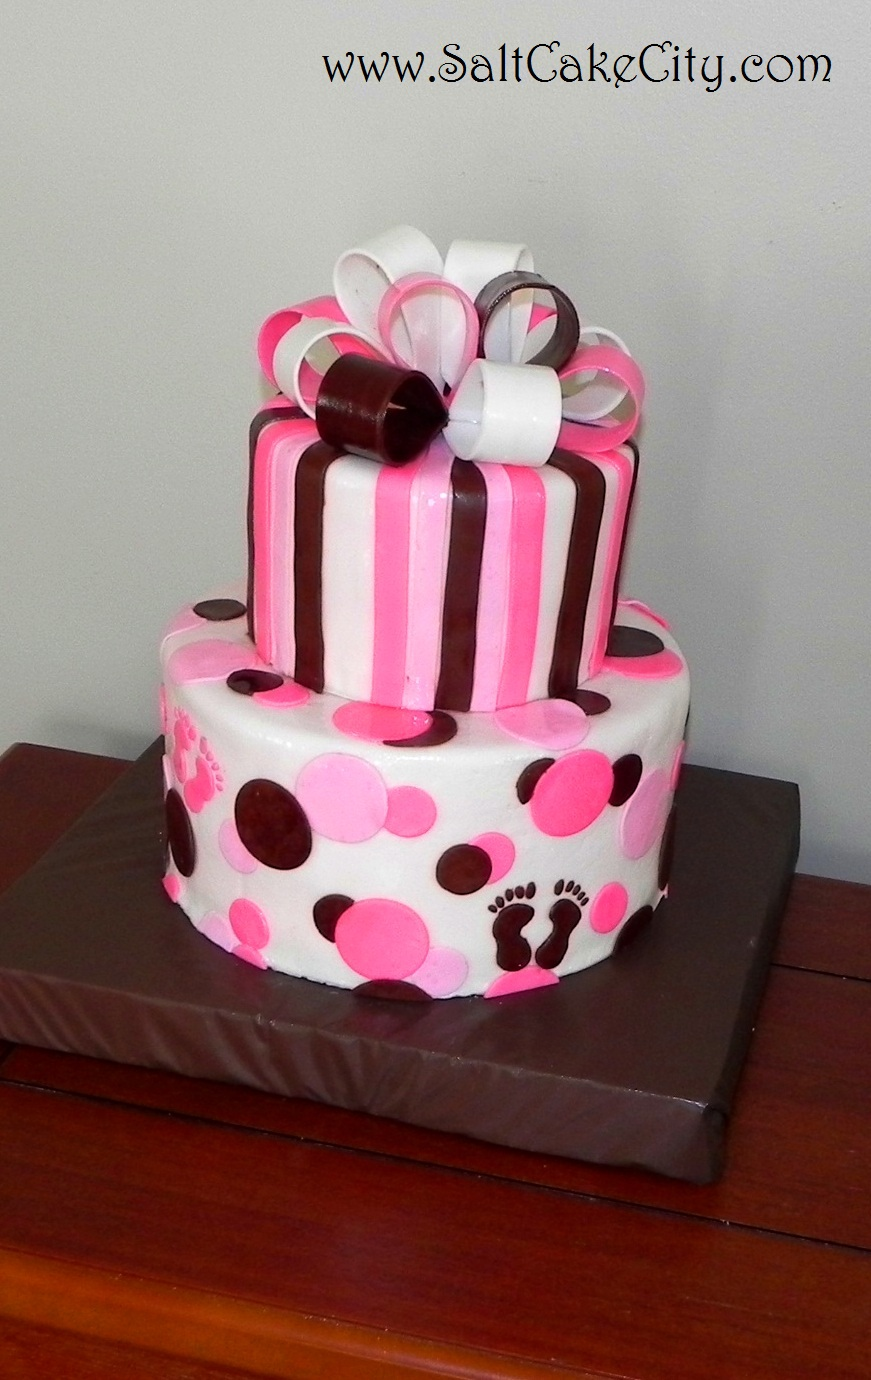 Salt Cake City: Pink and Brown Baby Shower Cake